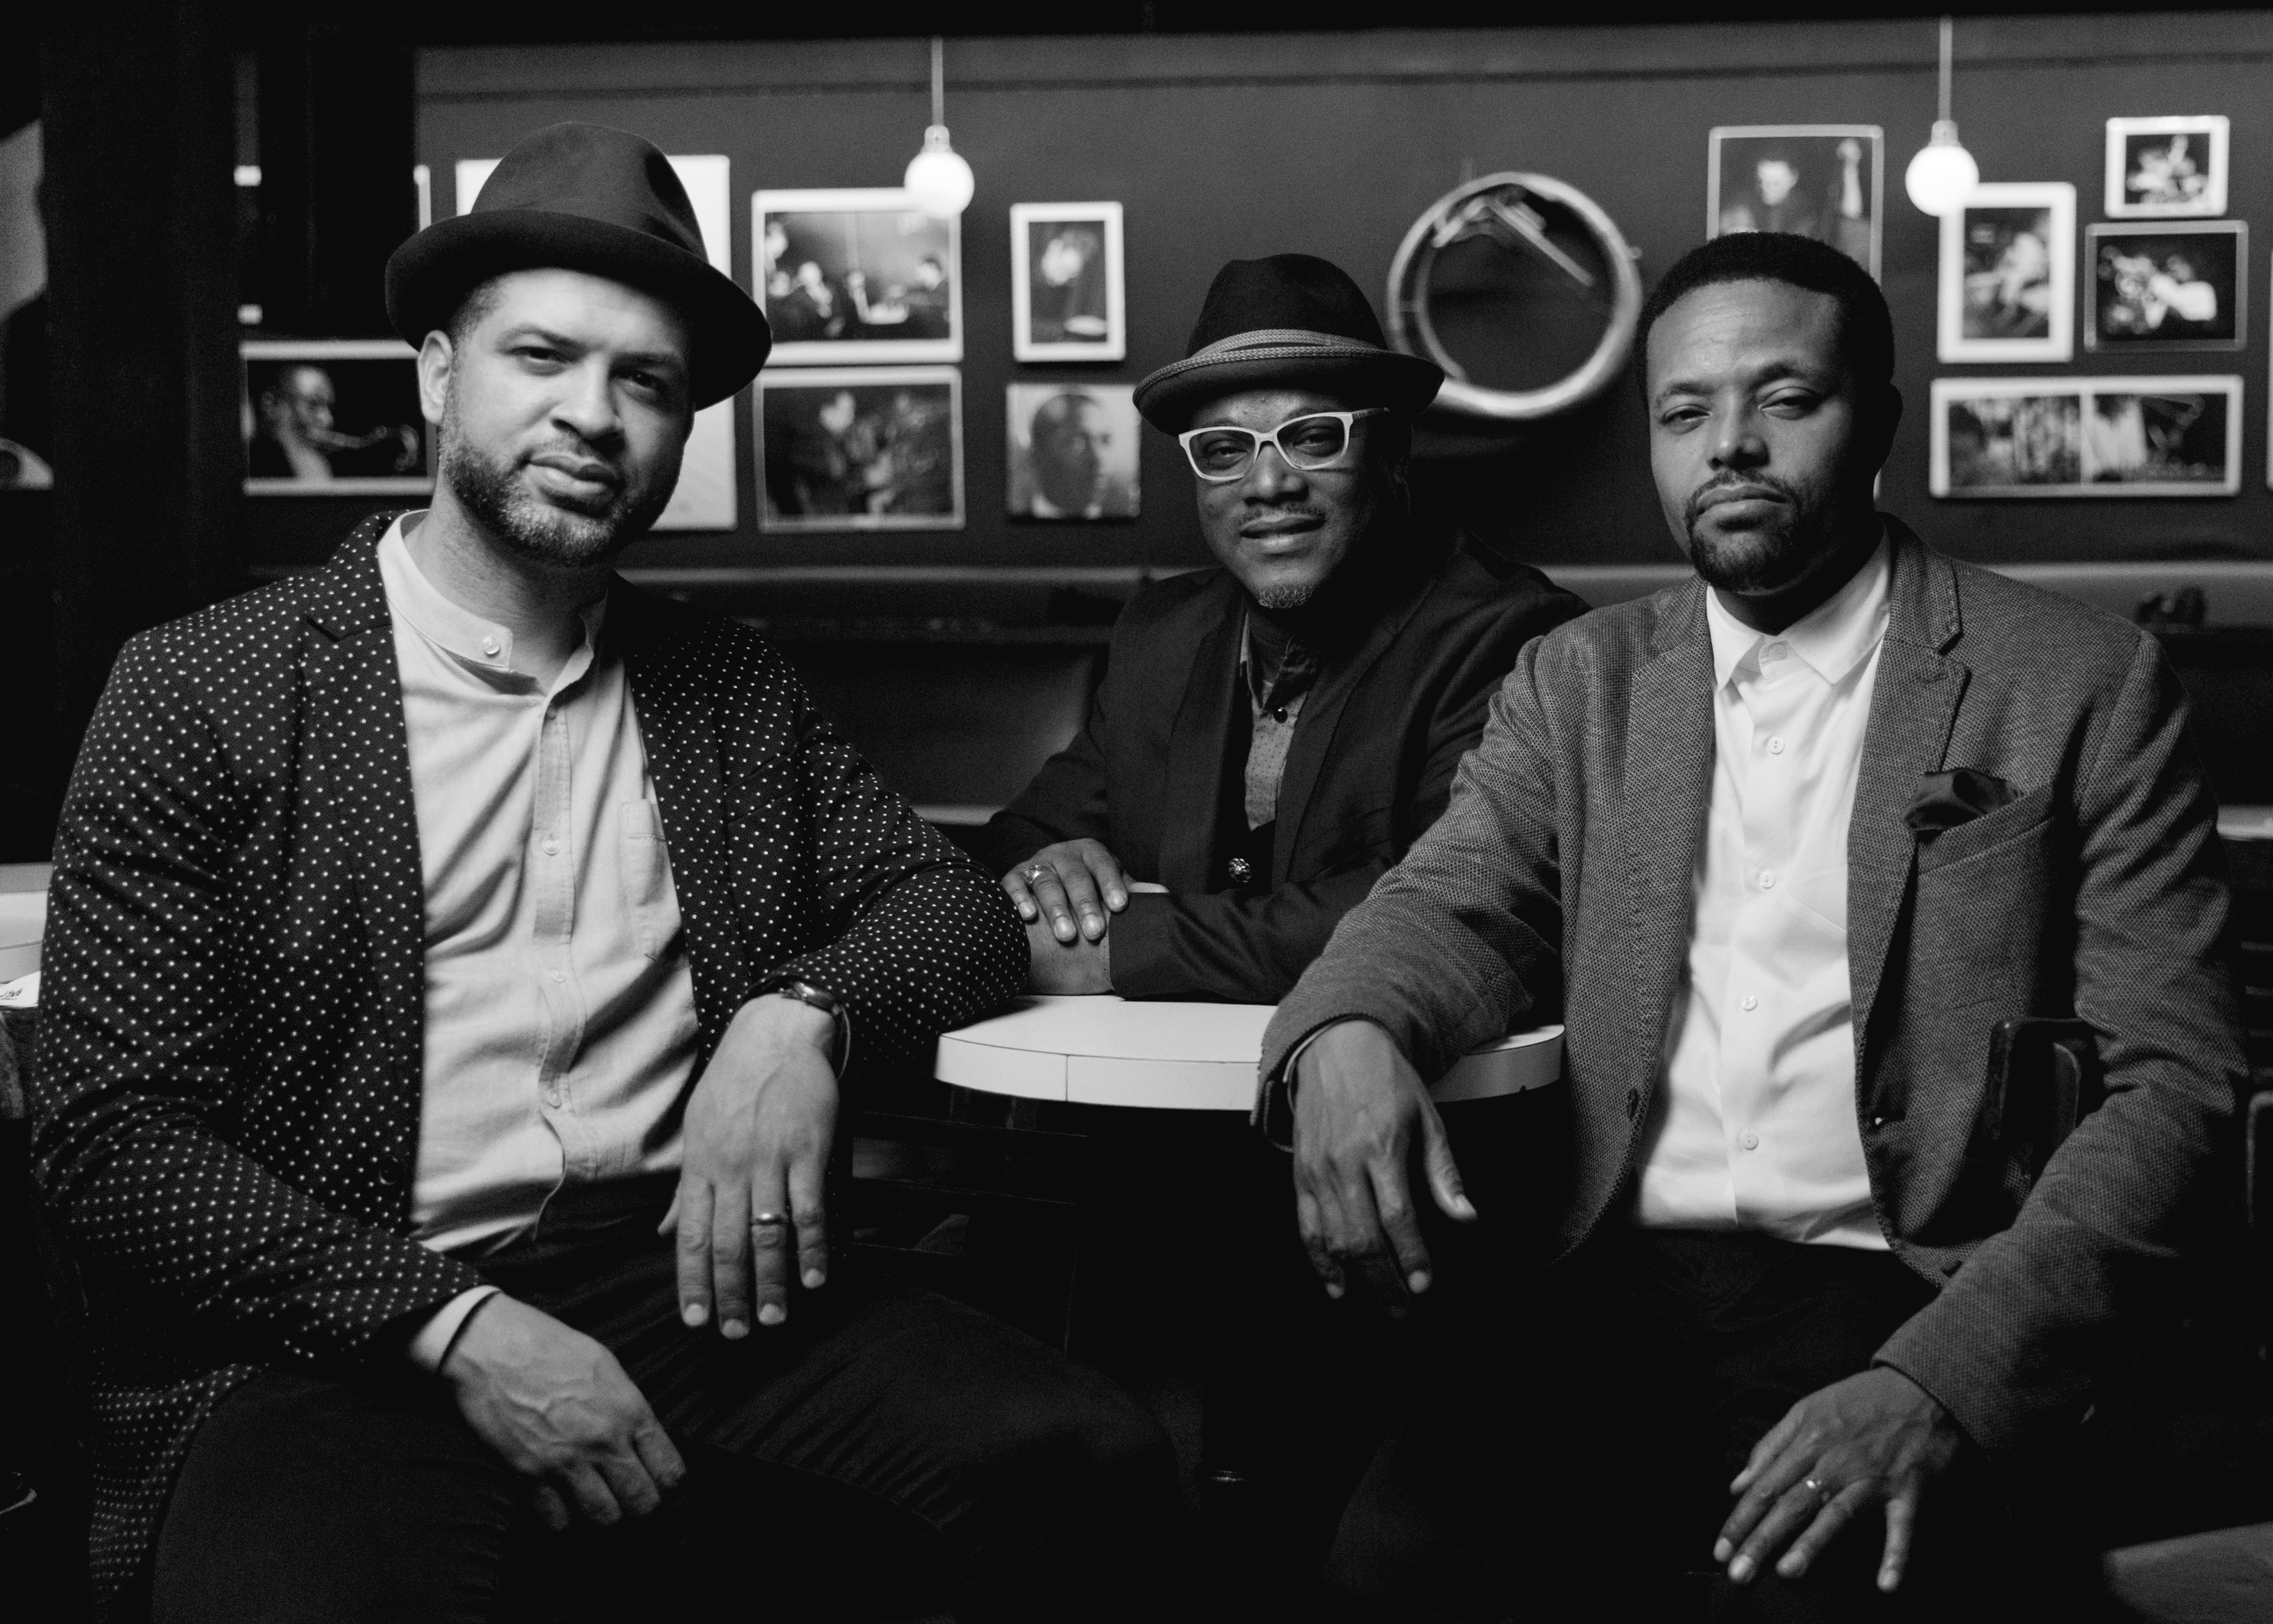 Jason Moran and the bandwagon in the vanguard